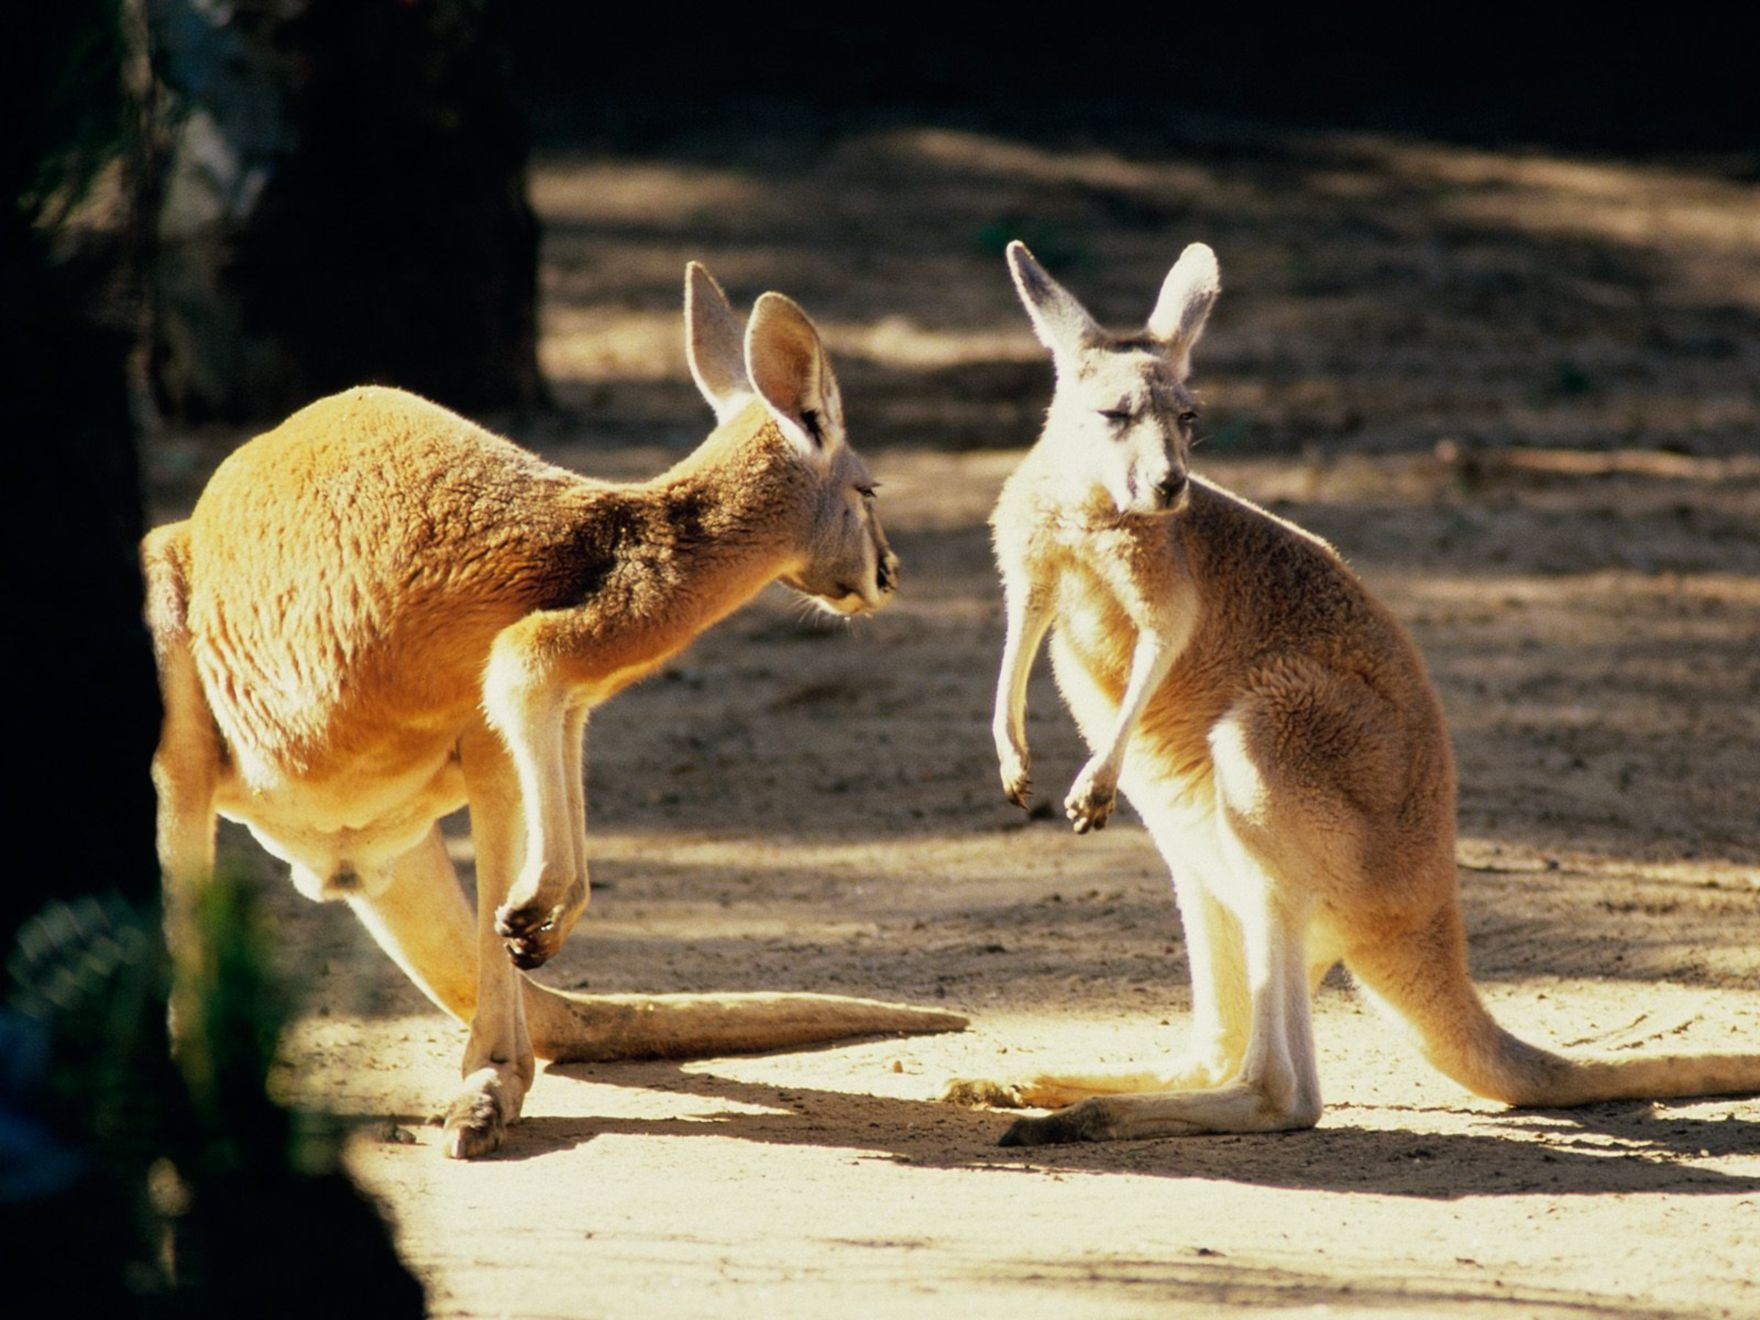 Download free HD Kangaroo Conversation Australia Normal Wallpaper, image